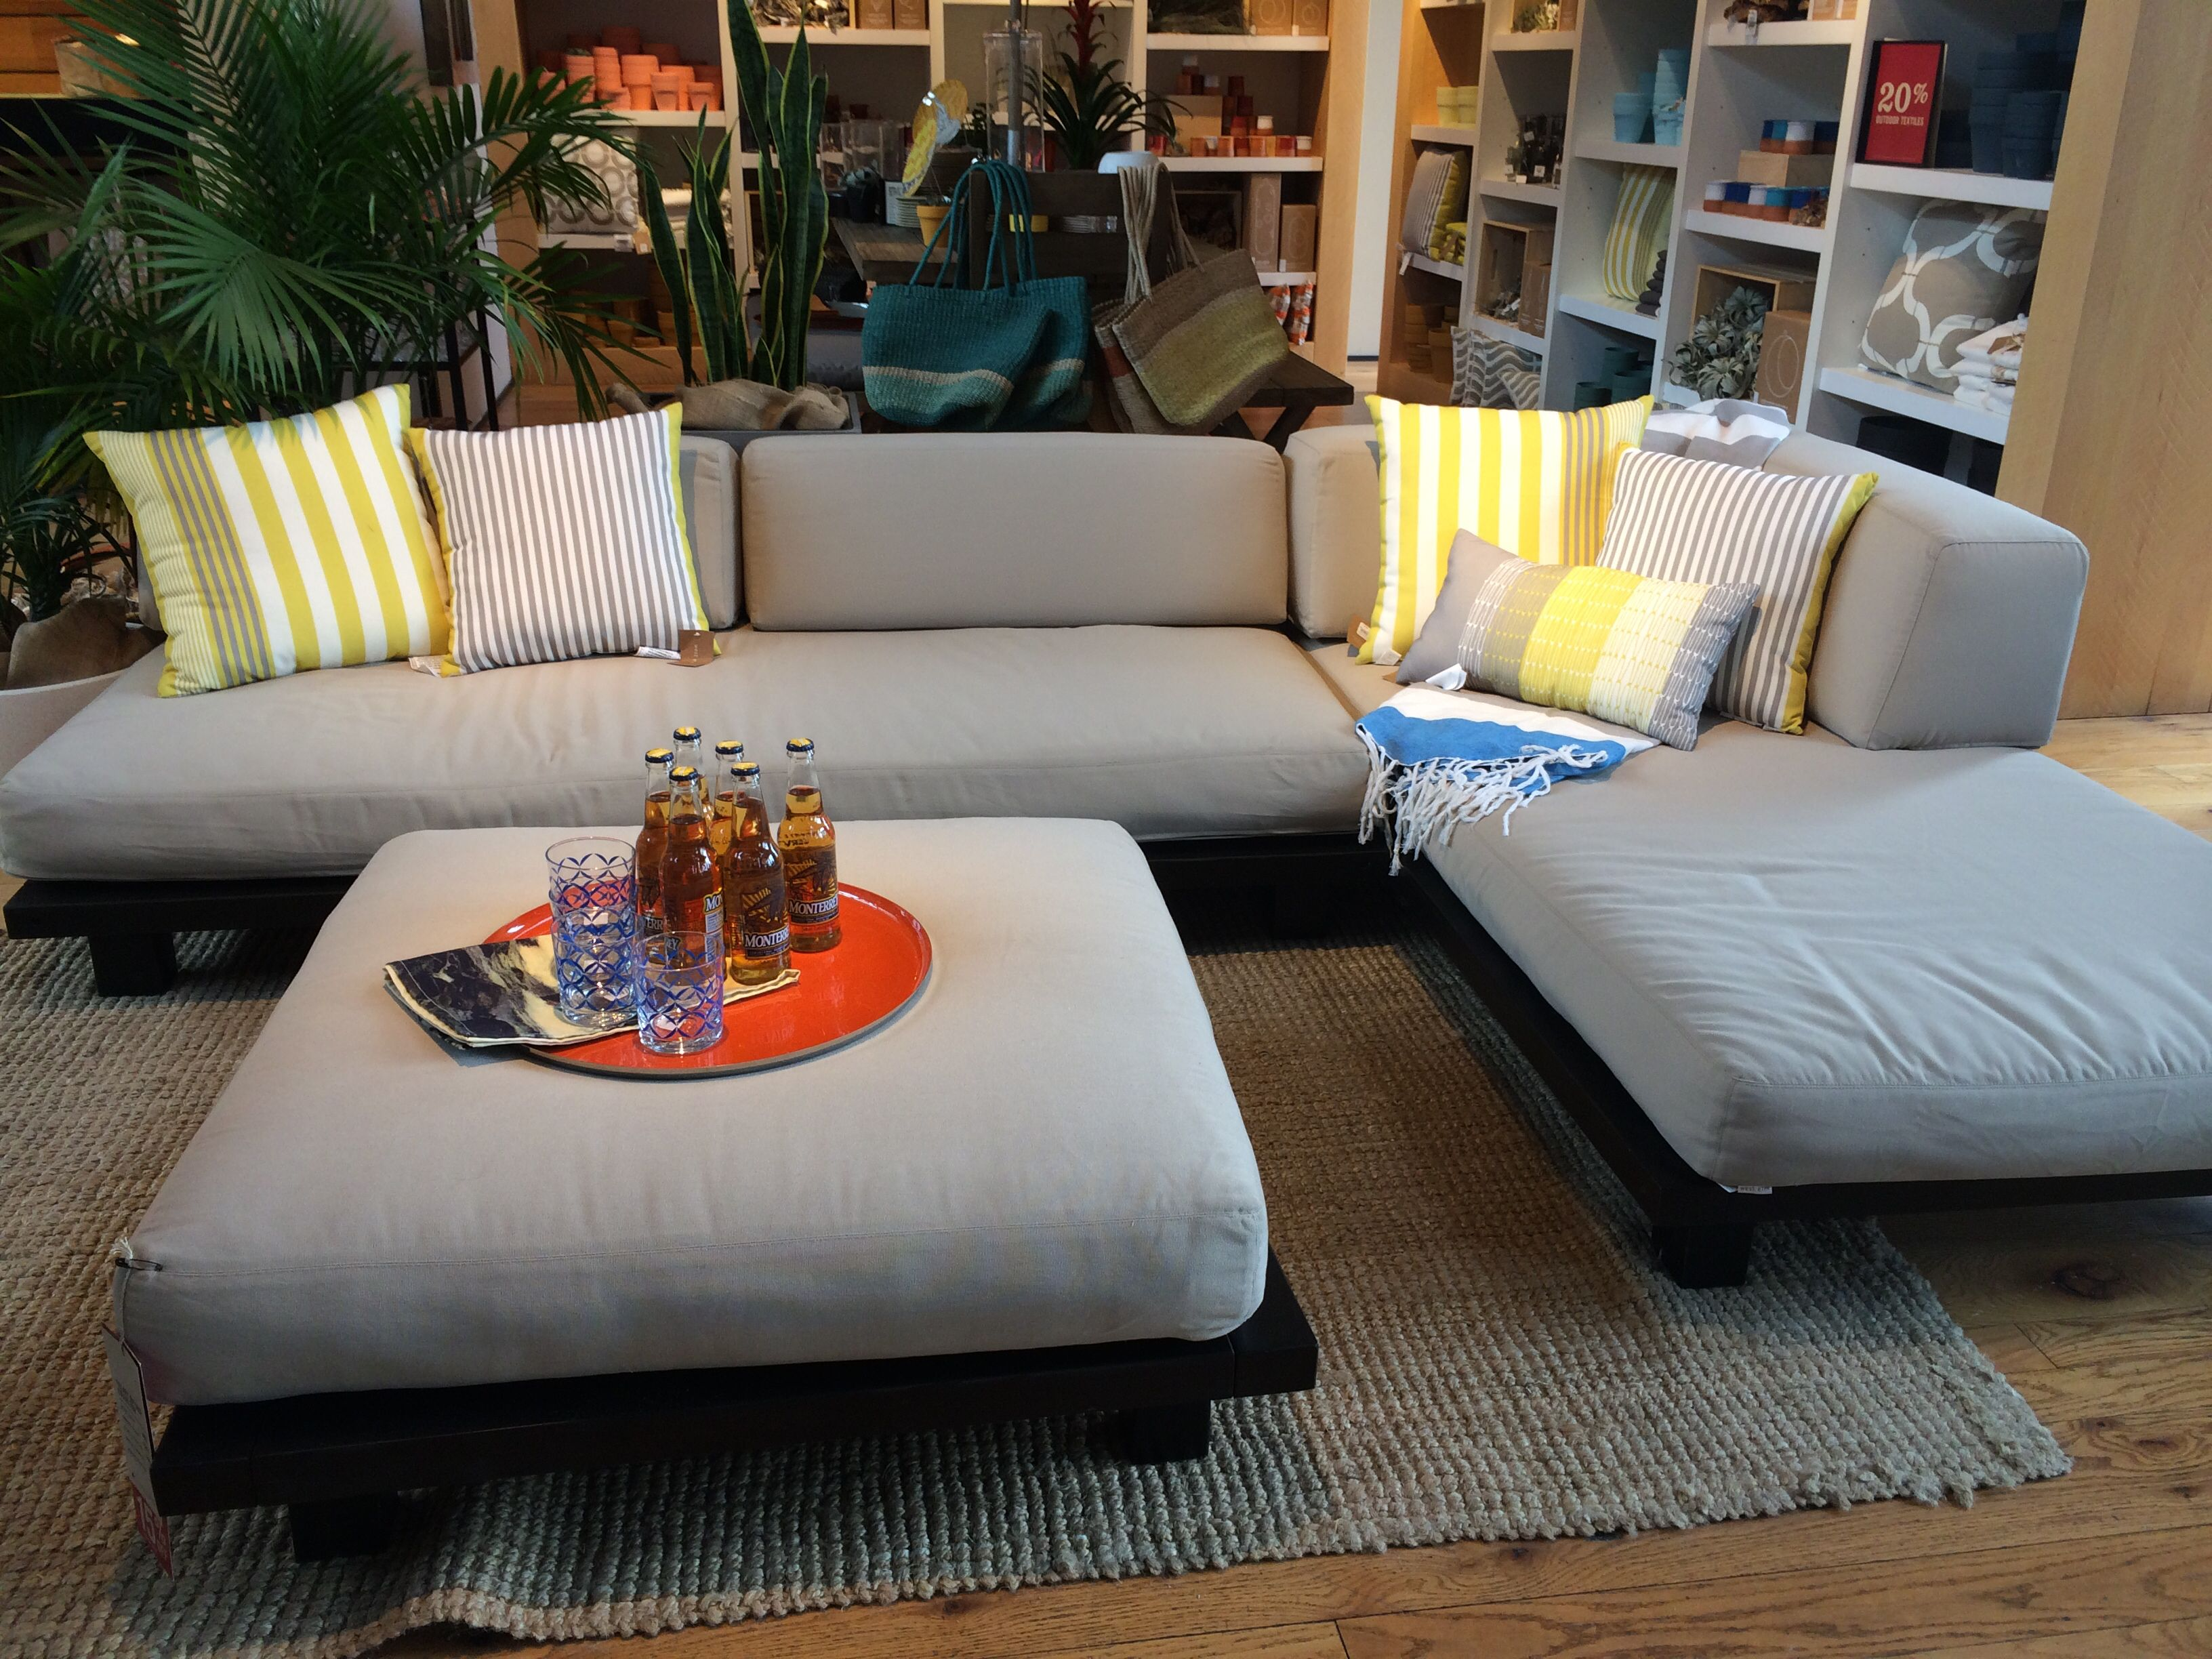 Superior Tillary Outdoor Modular Seating, West Elm, $551 $2079 Design